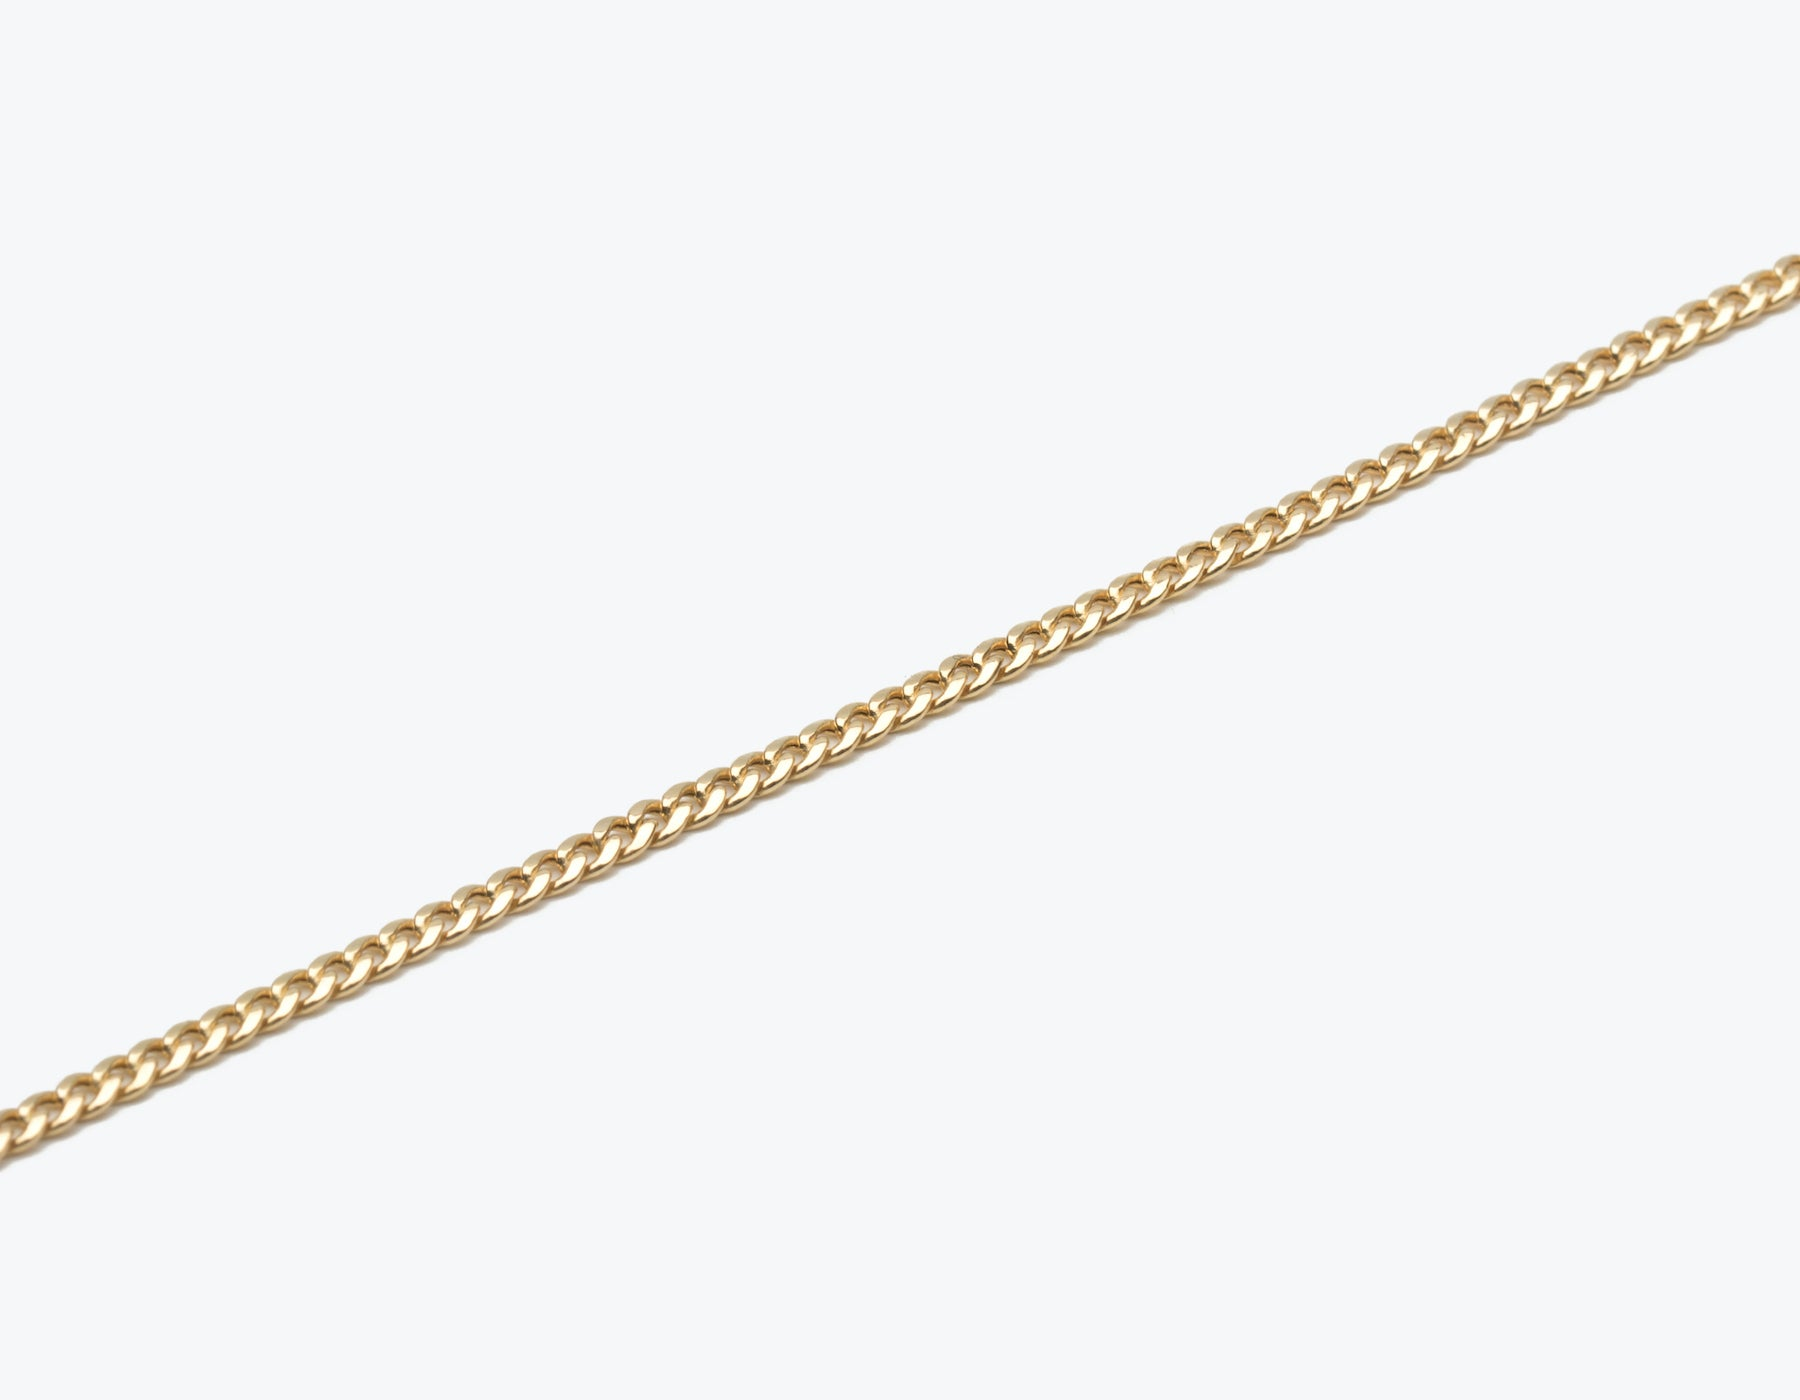 Vrai and Oro simple classic 14k Solid gold think Cuban Link Bracelet, 14K Yellow Gold